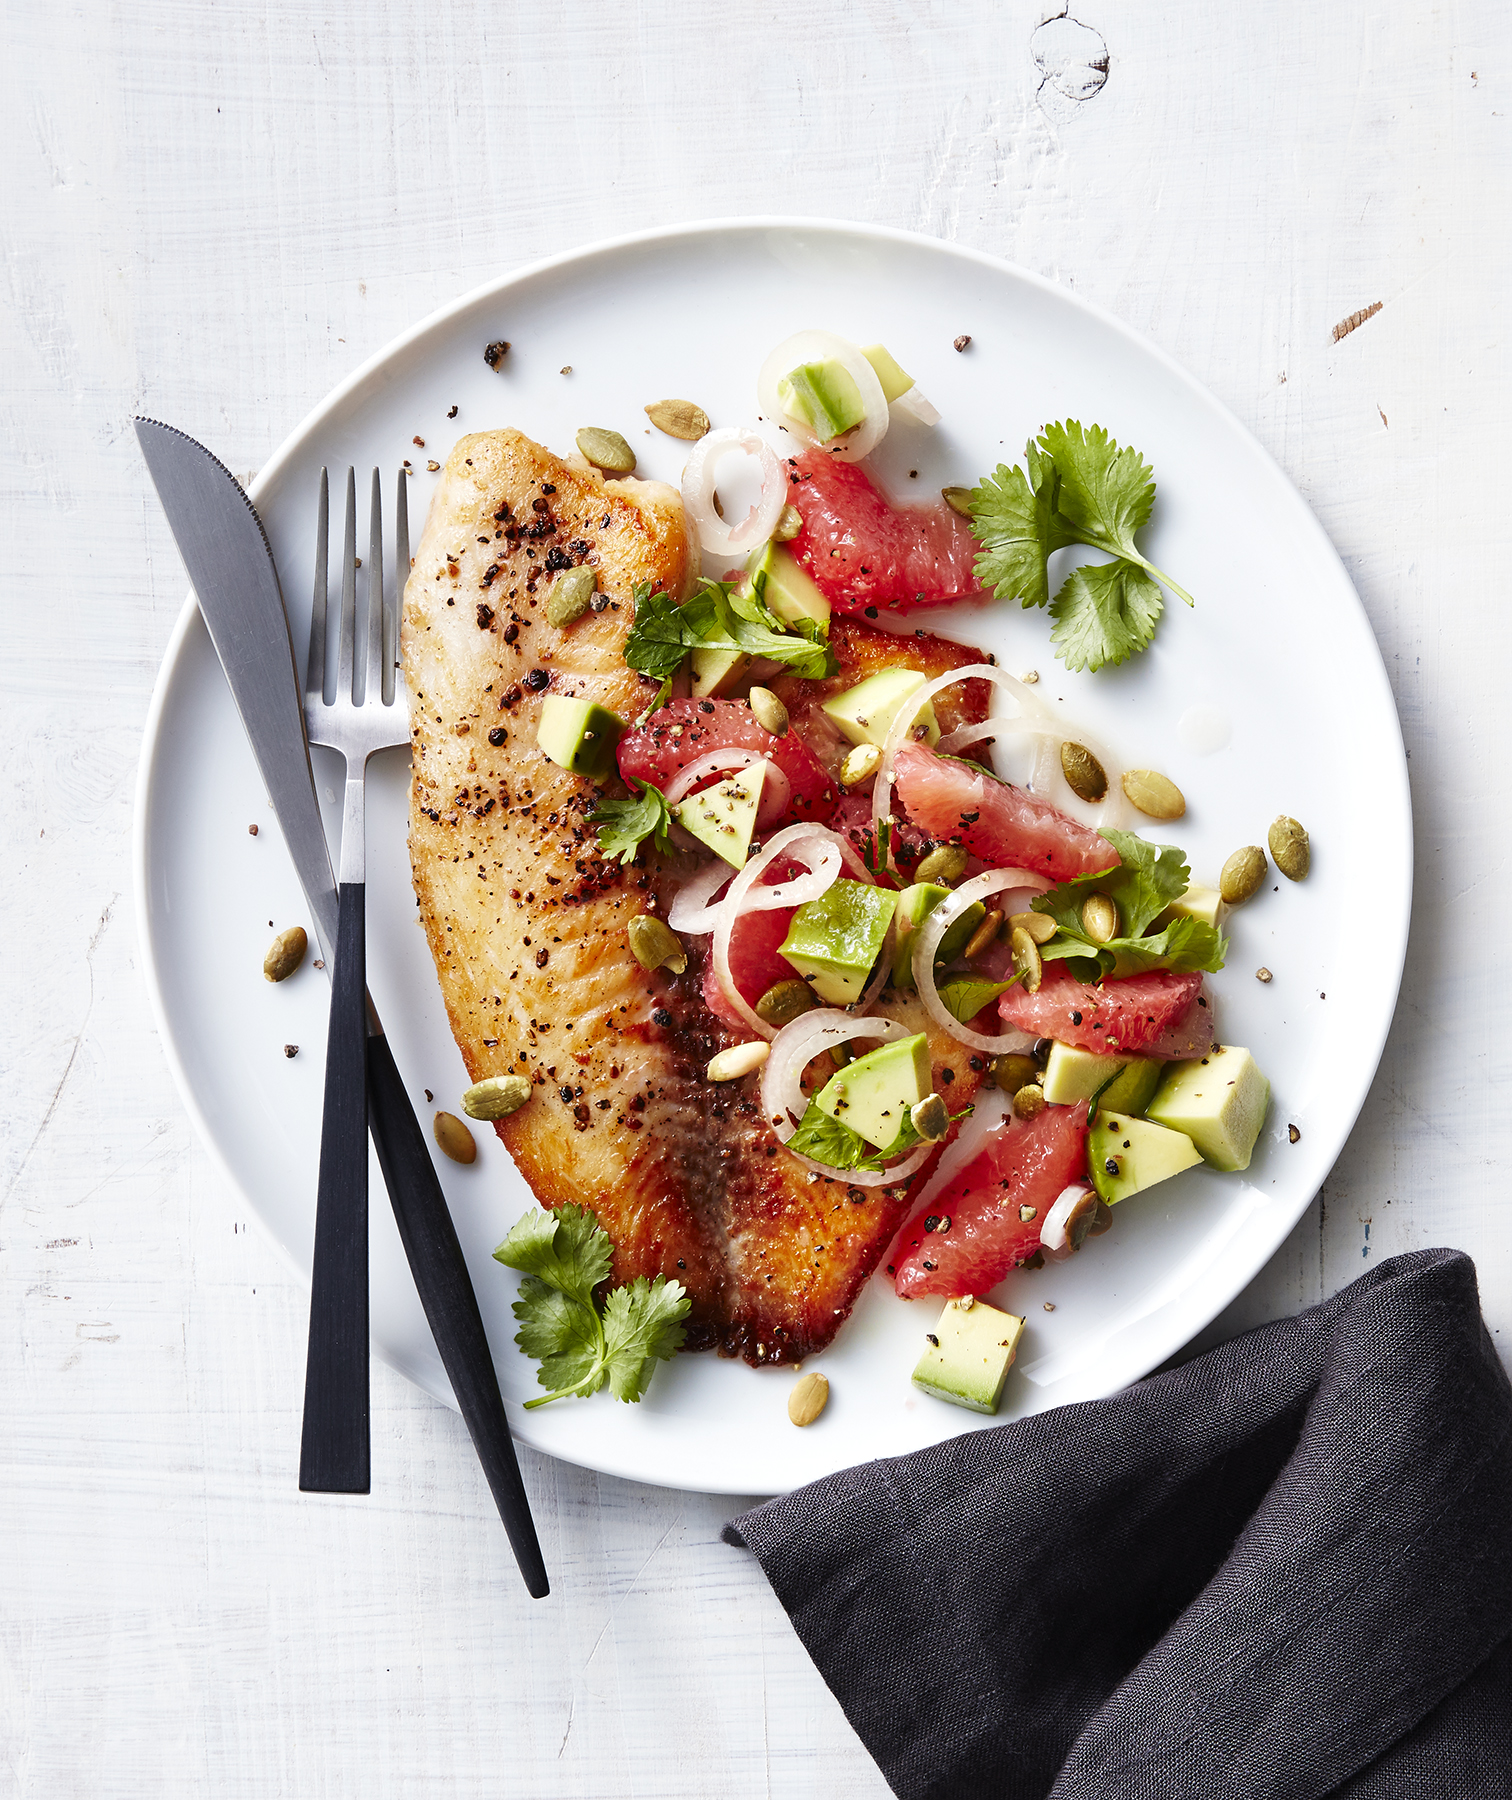 Pan-Seared Tilapia With Grapefruit-Avocado Salsa